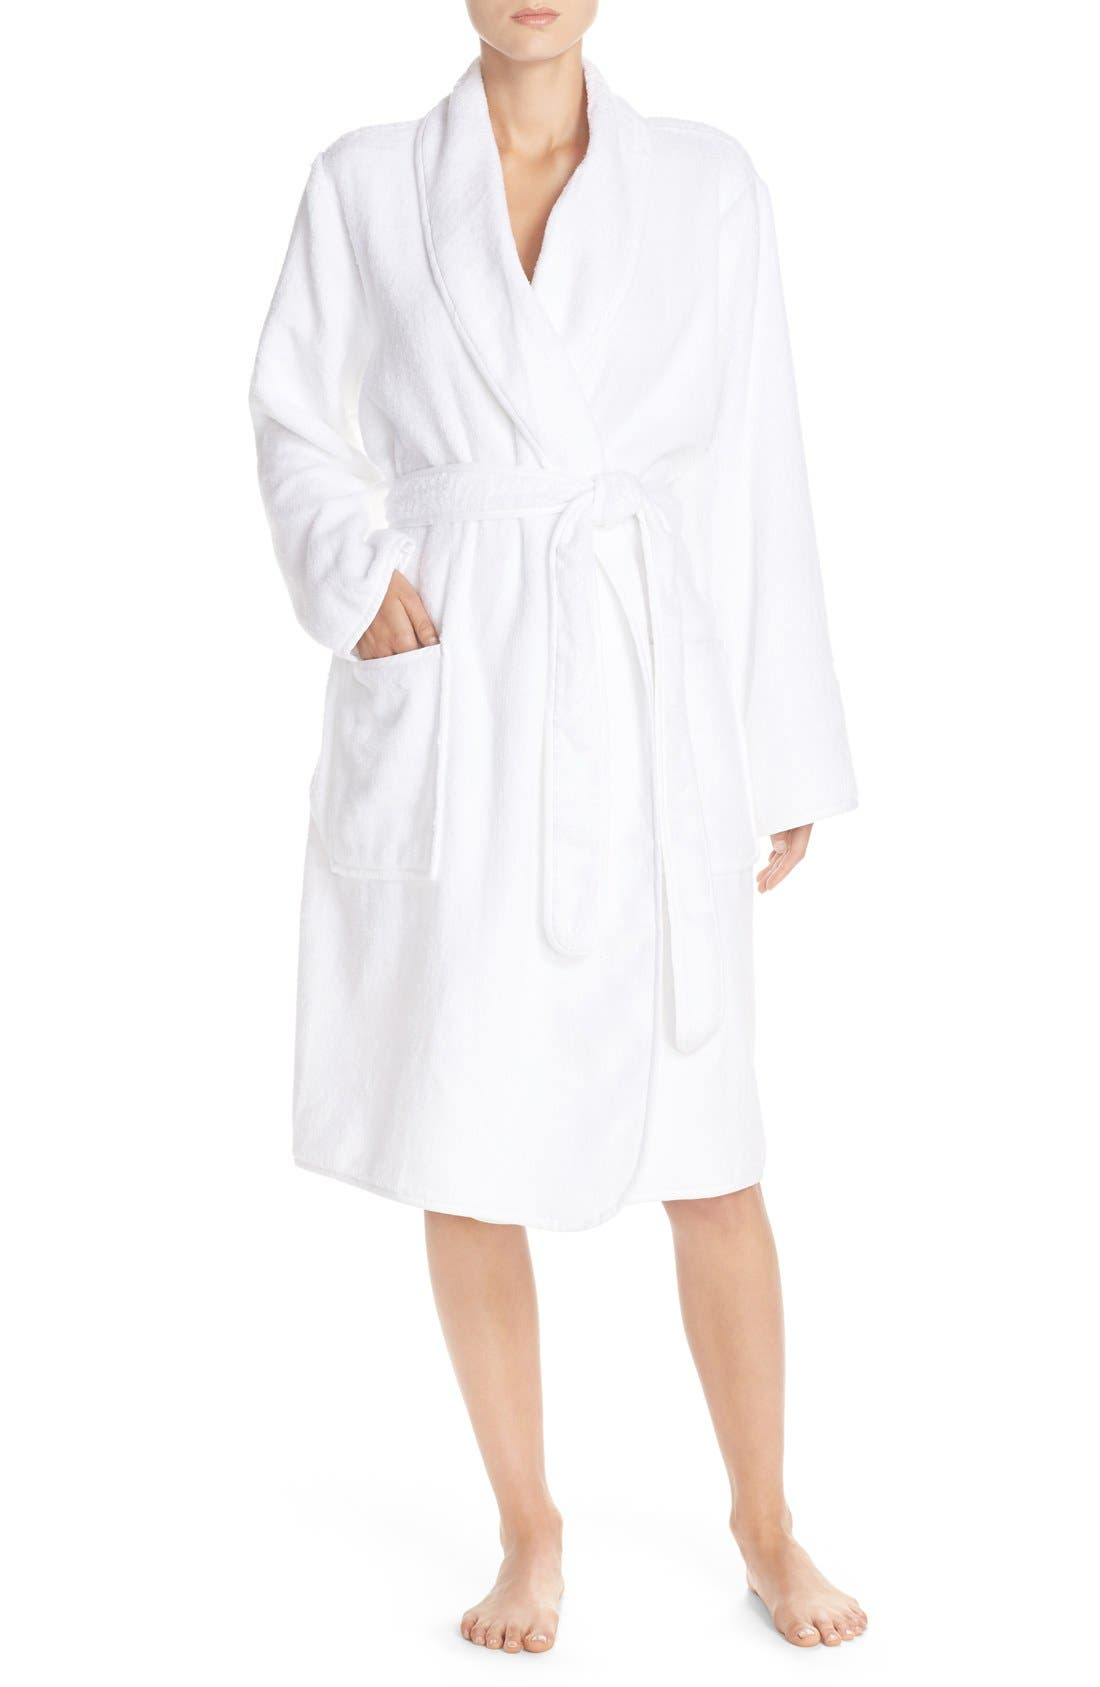 Terry Cotton Robe,                             Main thumbnail 1, color,                             100